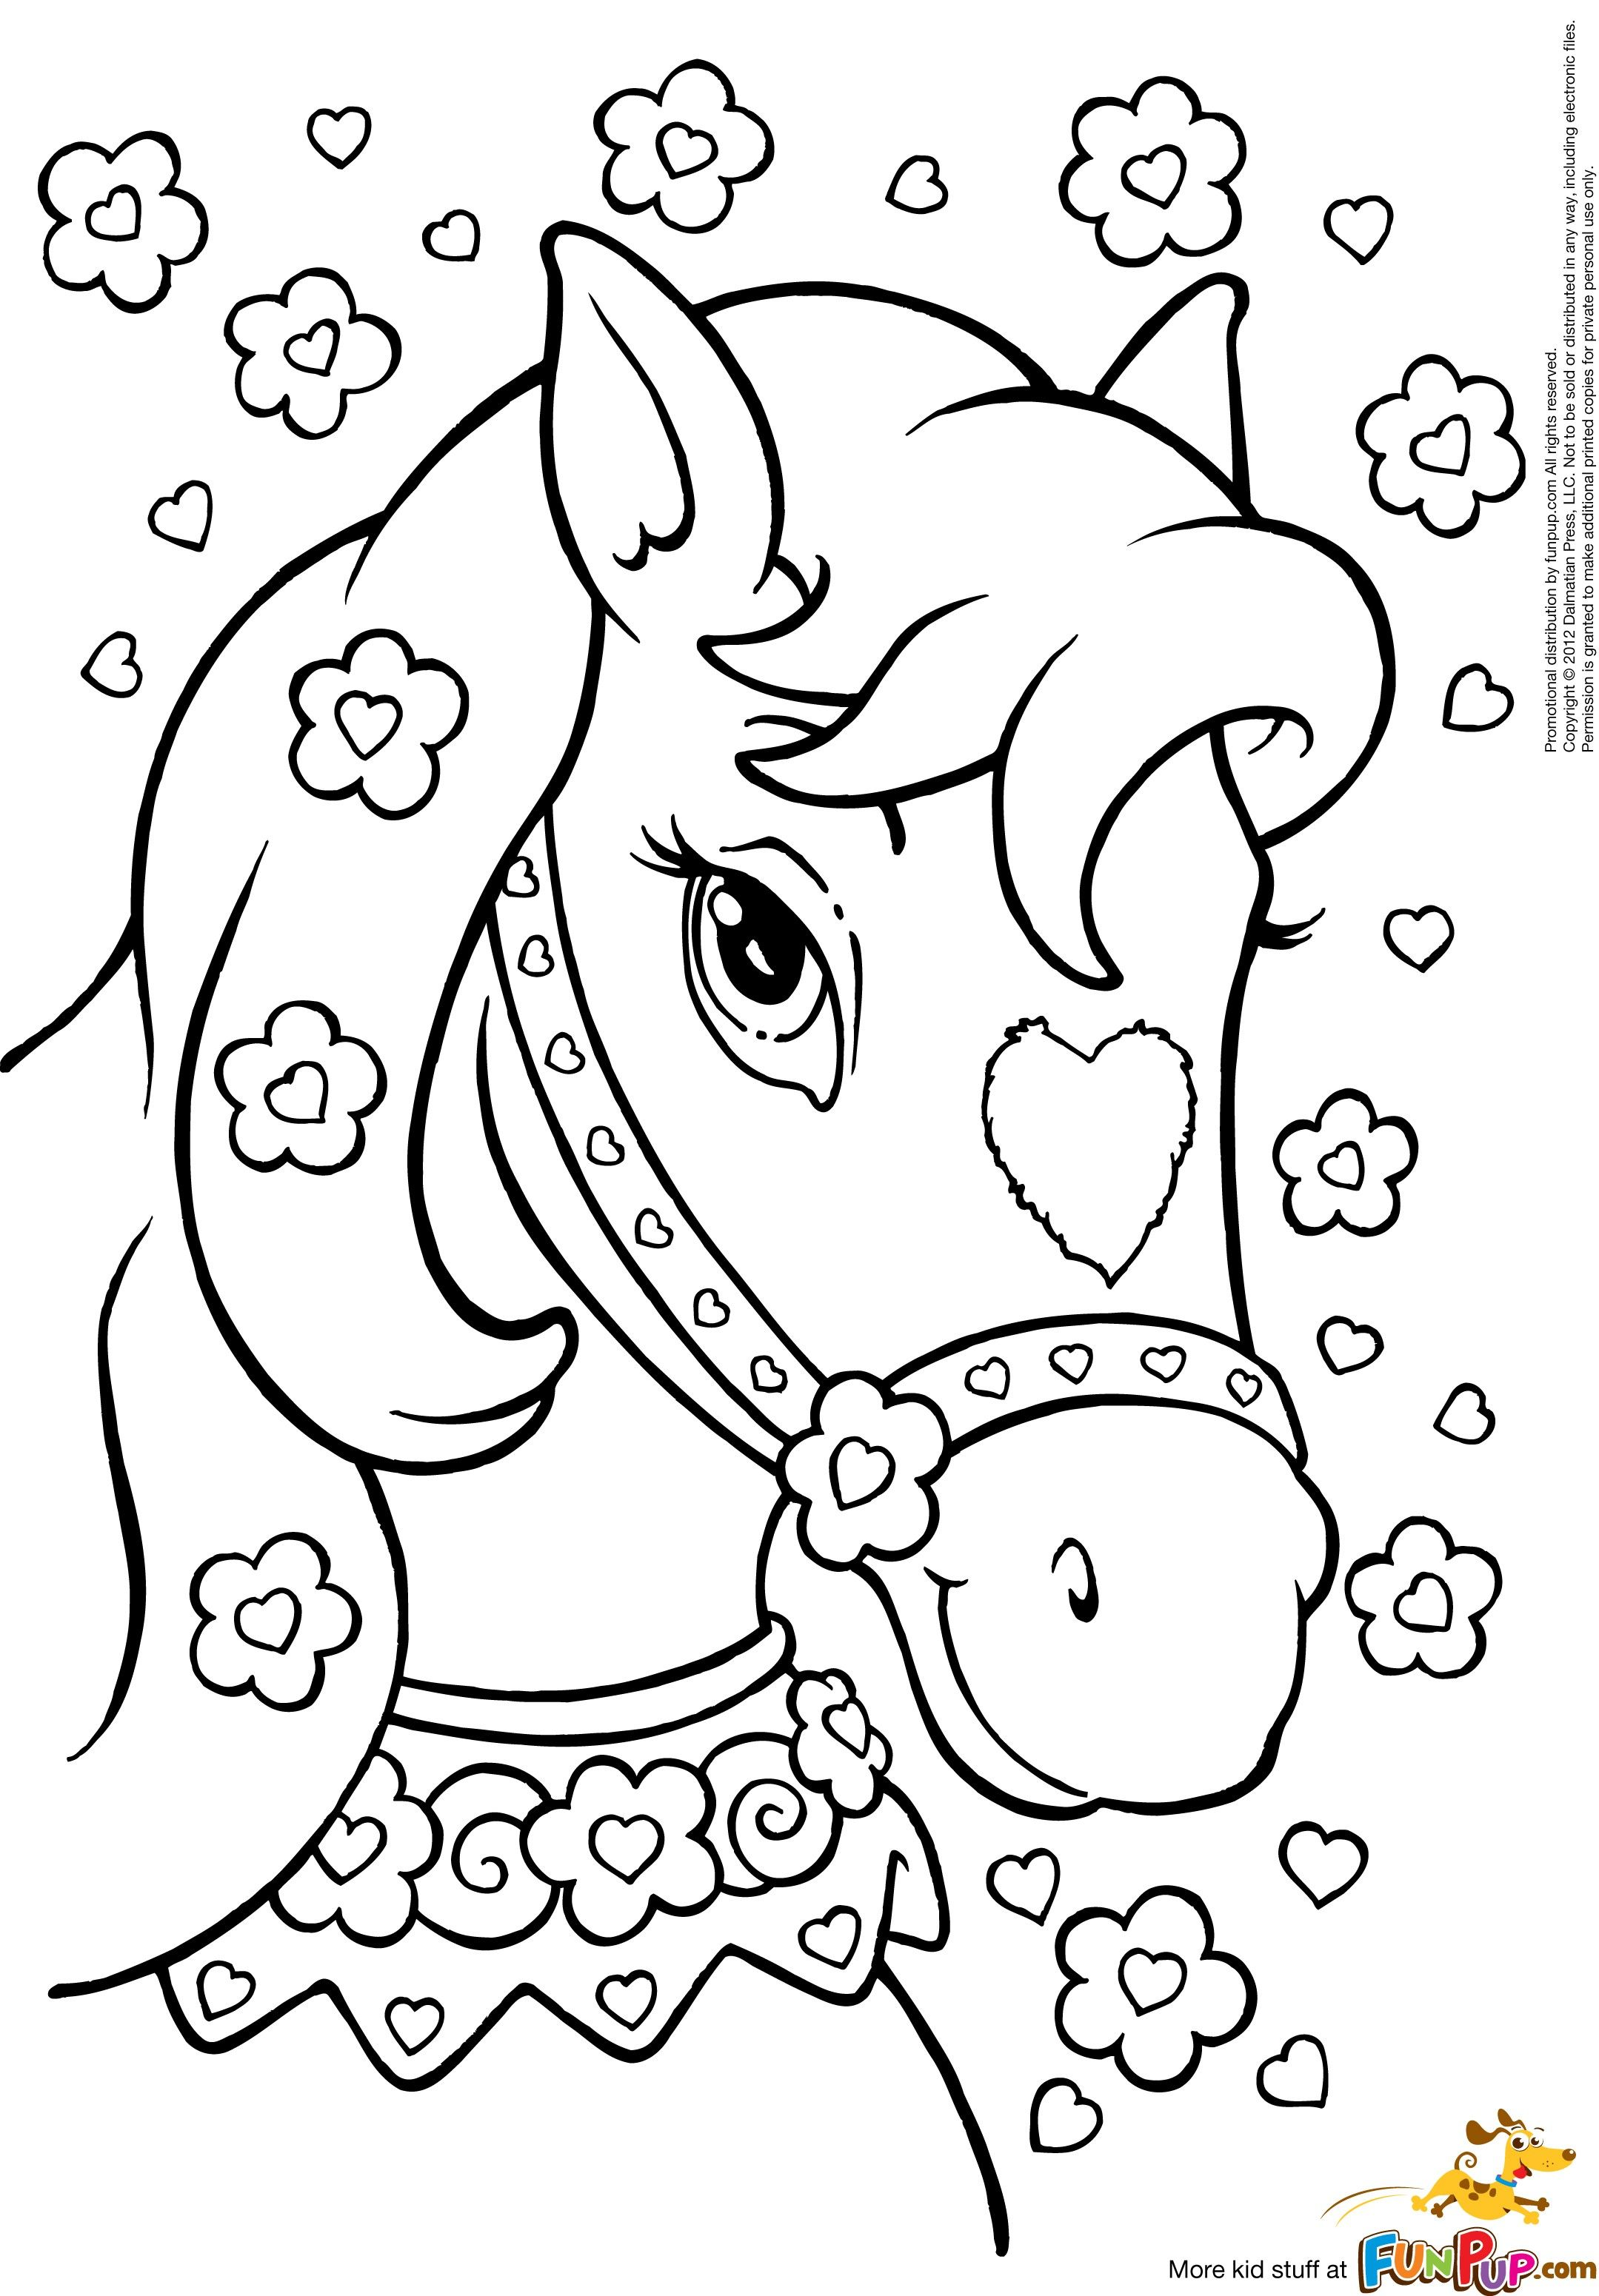 Horse With Hearts Flowers Pinteres Free Princess Coloring Pages Free Coloring Sheets